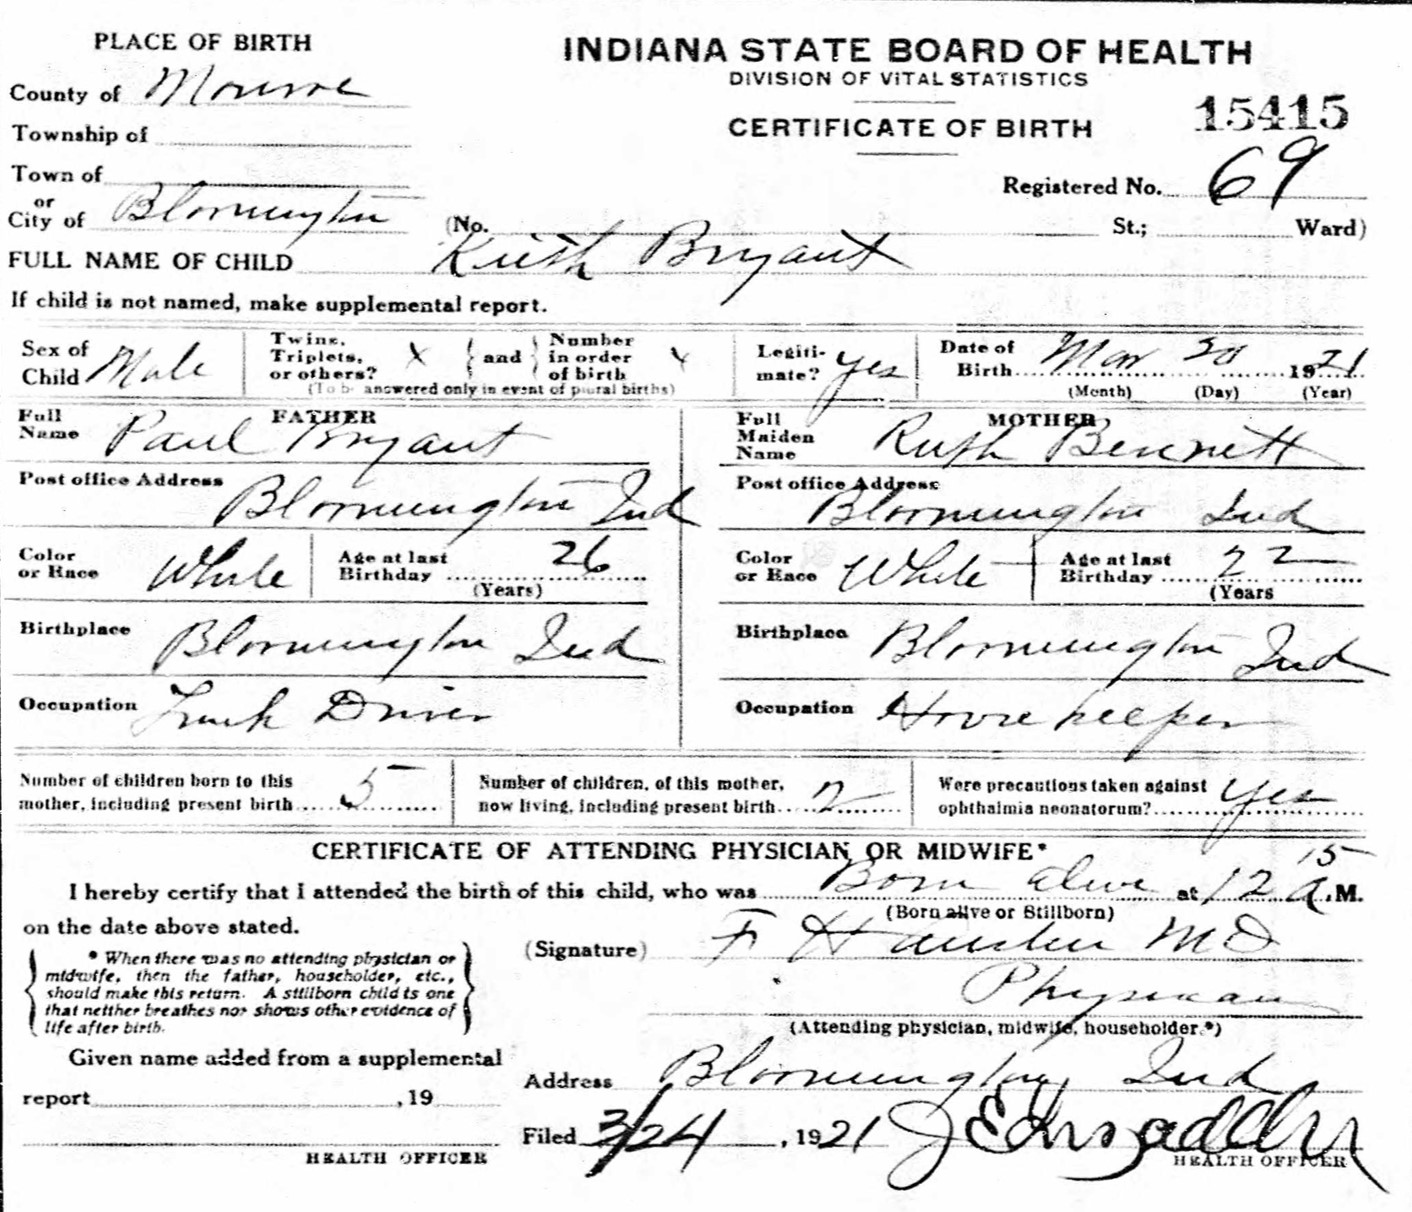 Keith dale bryant 1921 2000 find a grave memorial source indiana state board of health birth certificates 1907 1940 microfilm indiana archives and records administration indianapolis indiana aiddatafo Choice Image